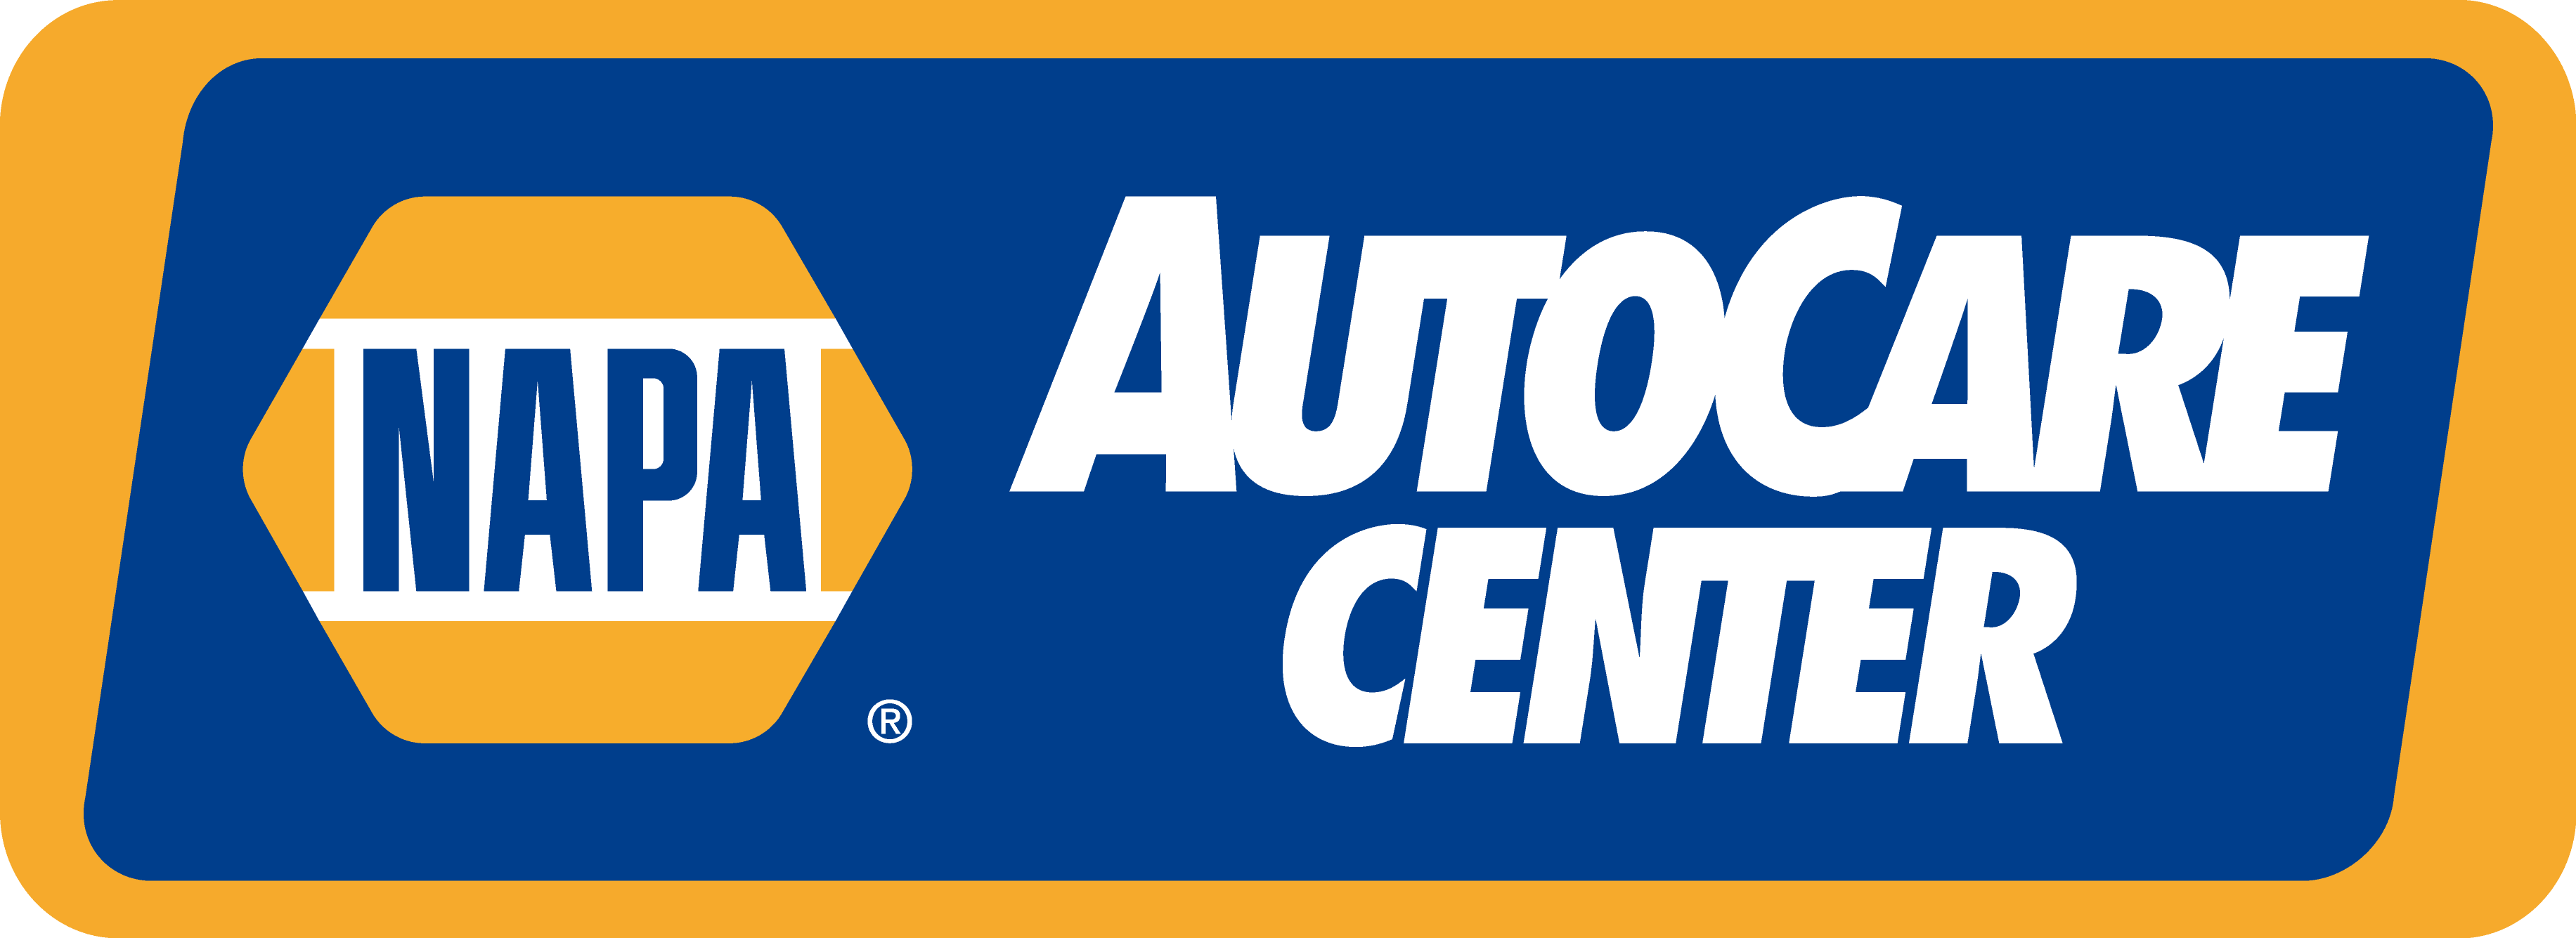 NAPA Auto Care Center, Country Club Automotive, Loomis, CA, 95650